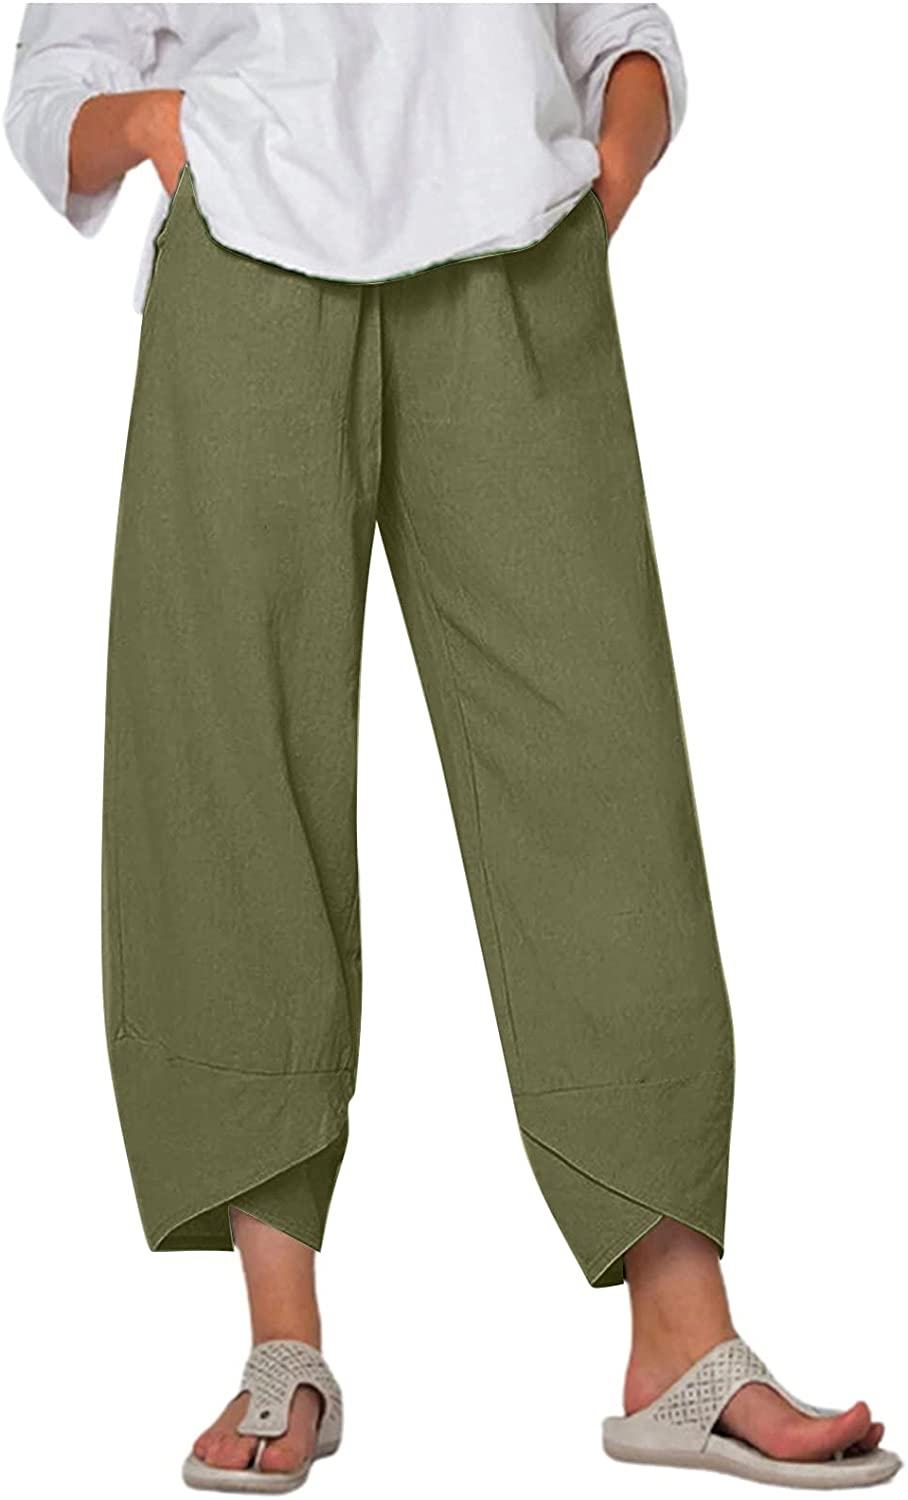 Meengg Outstanding Womens Cotton Linen Harem Casual Max 88% OFF Loose Pants Elastic Wais